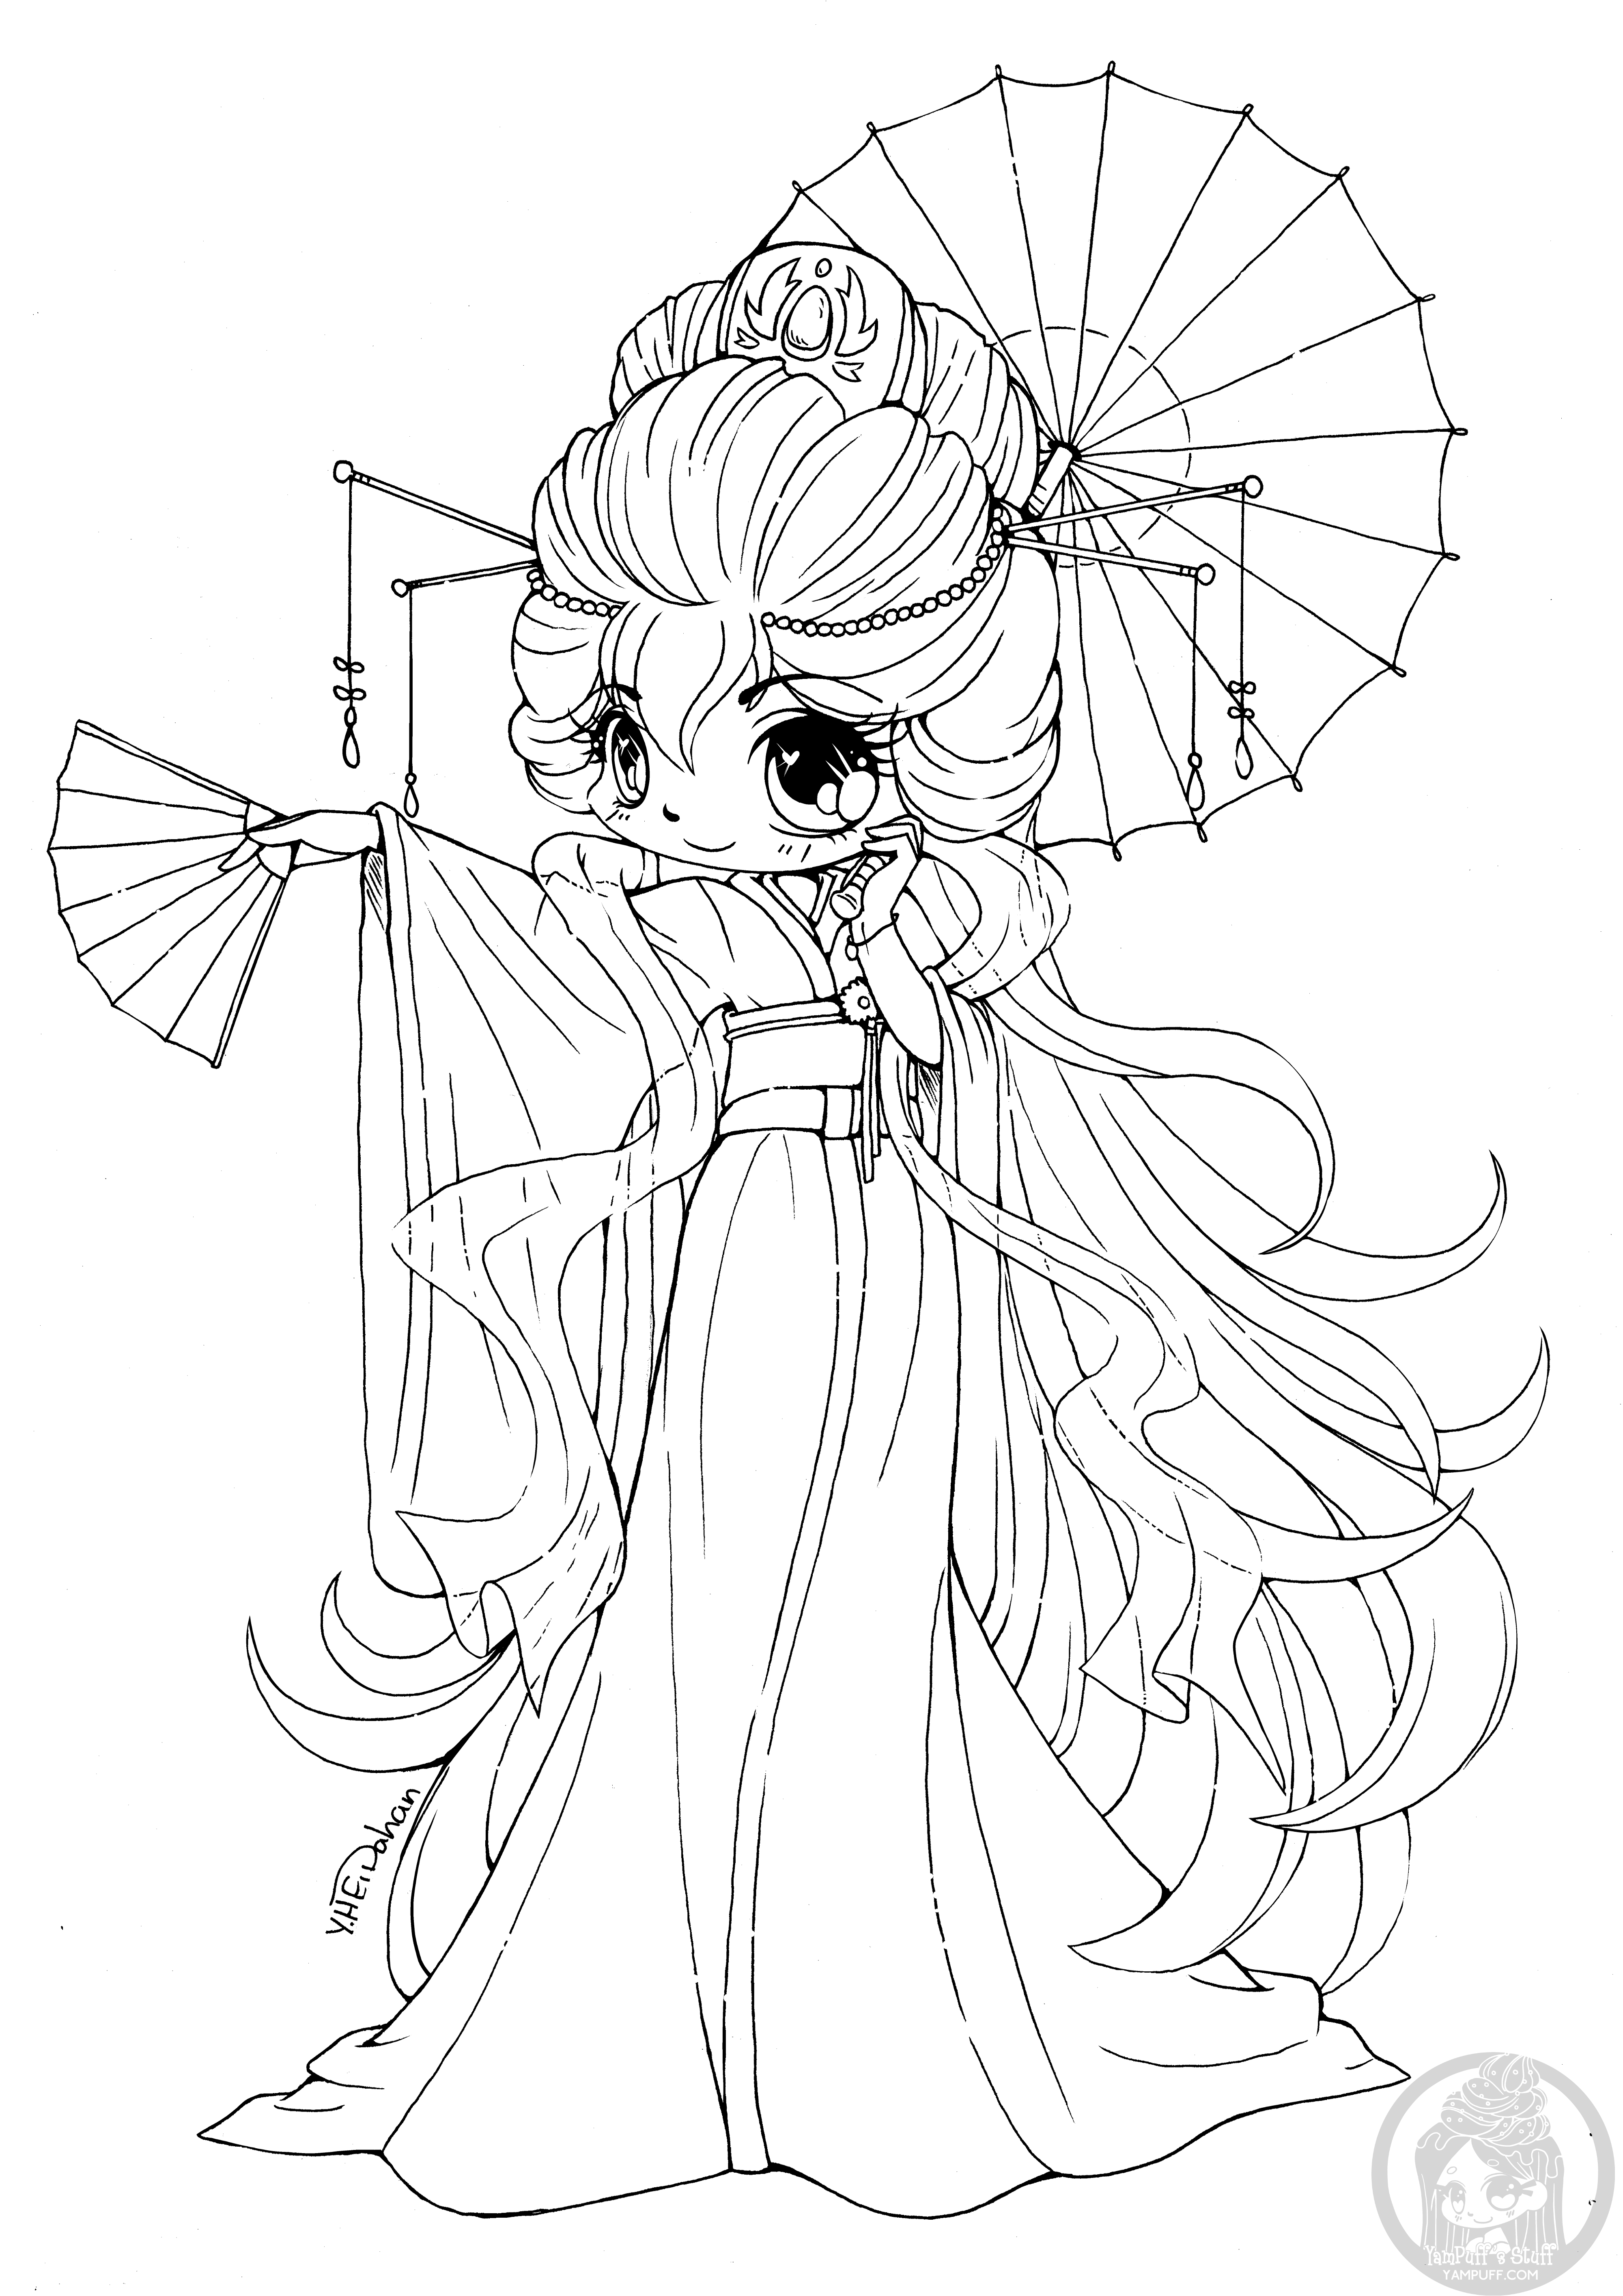 chibi pictures chibis free chibi coloring pages yampuff39s stuff chibi pictures